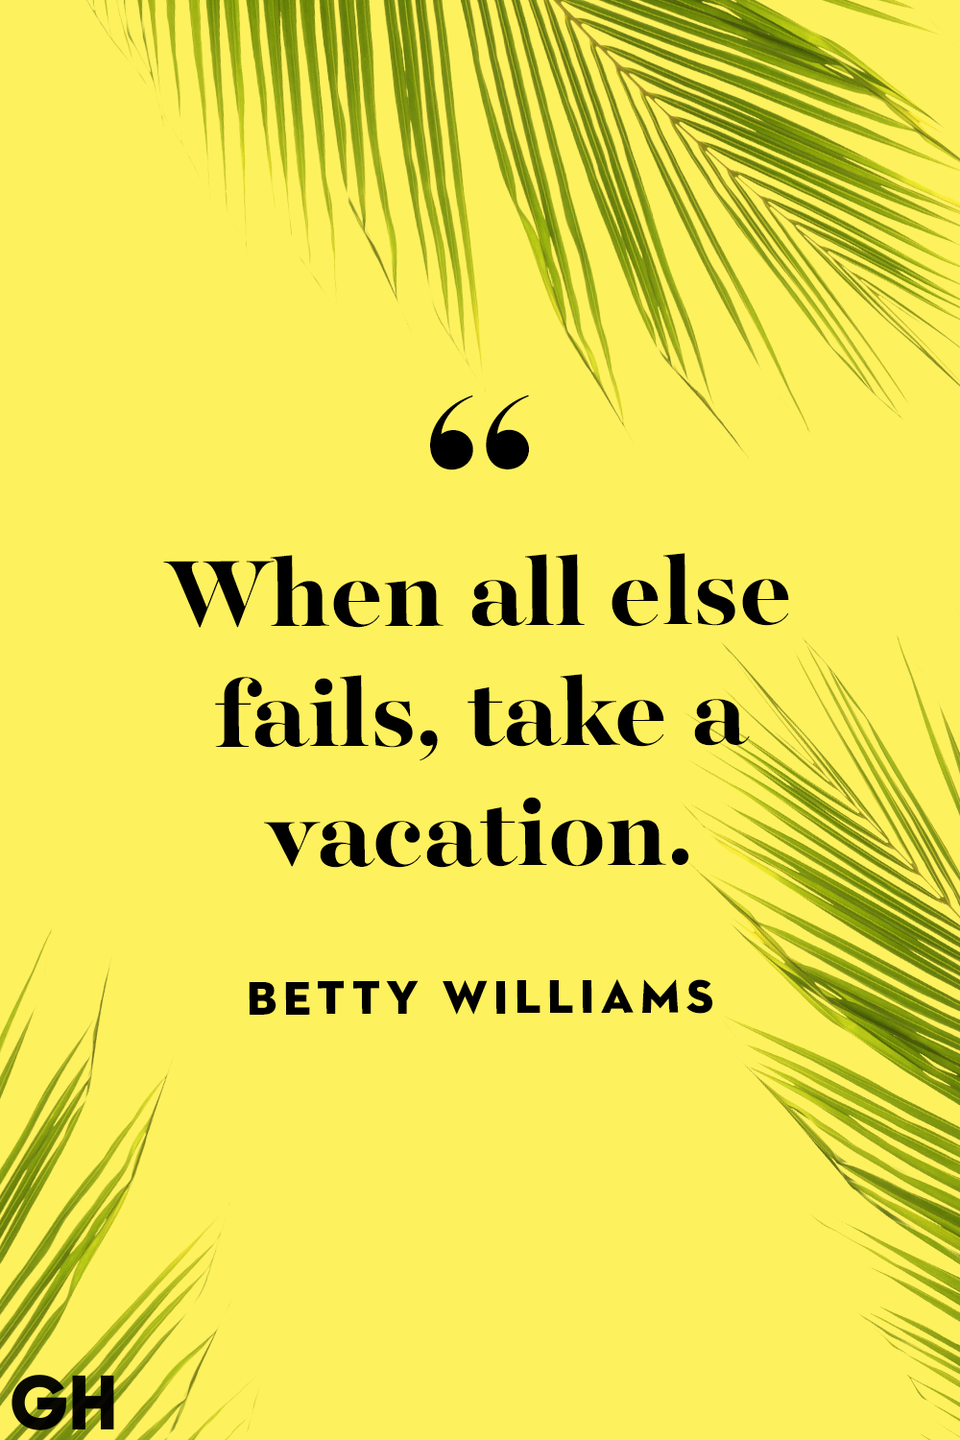 <p>When all else fails, take a vacation.</p>